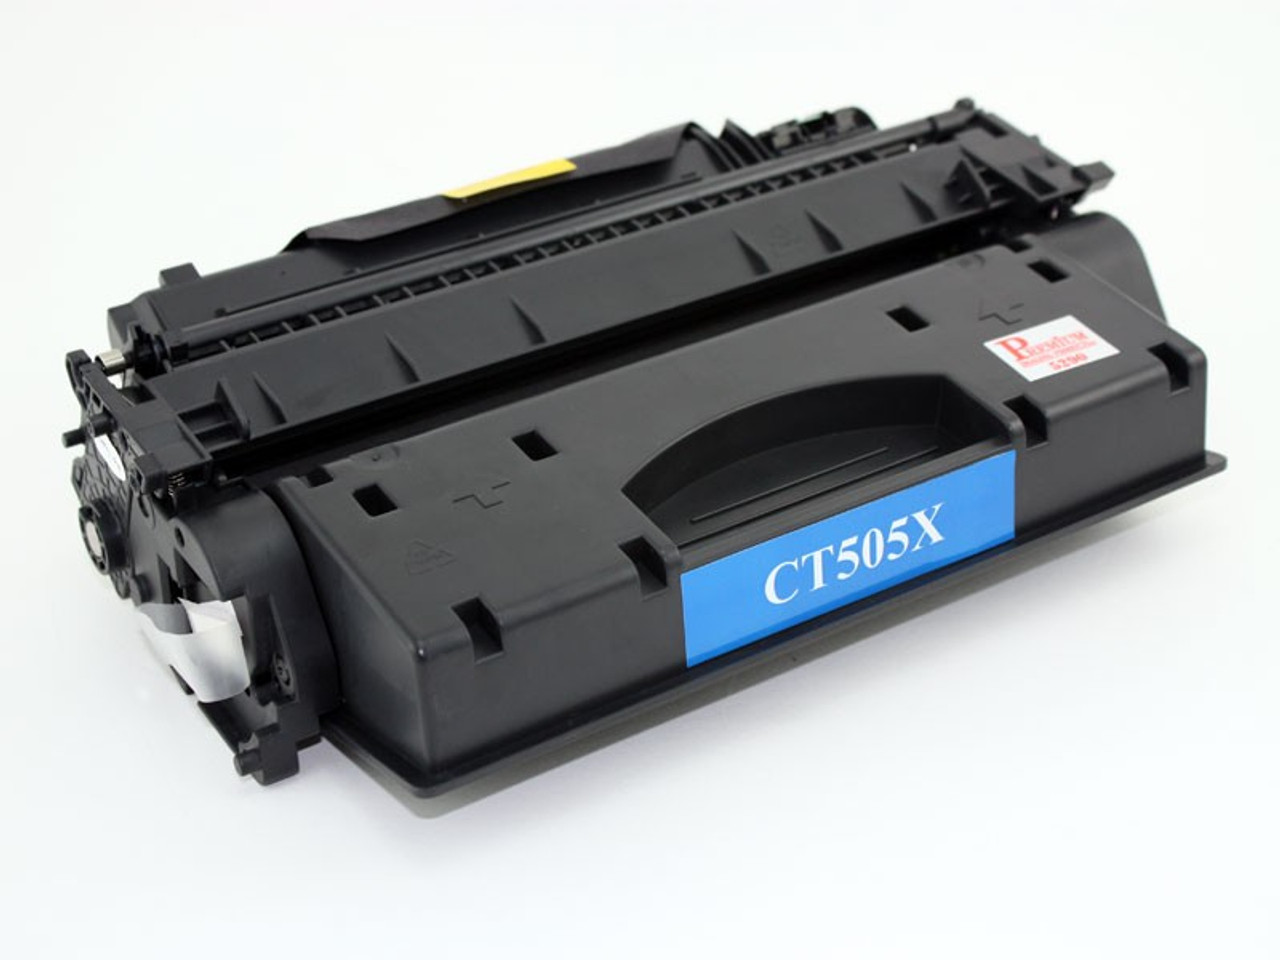 HP P2055 MICR Toner Cartridge New compatible